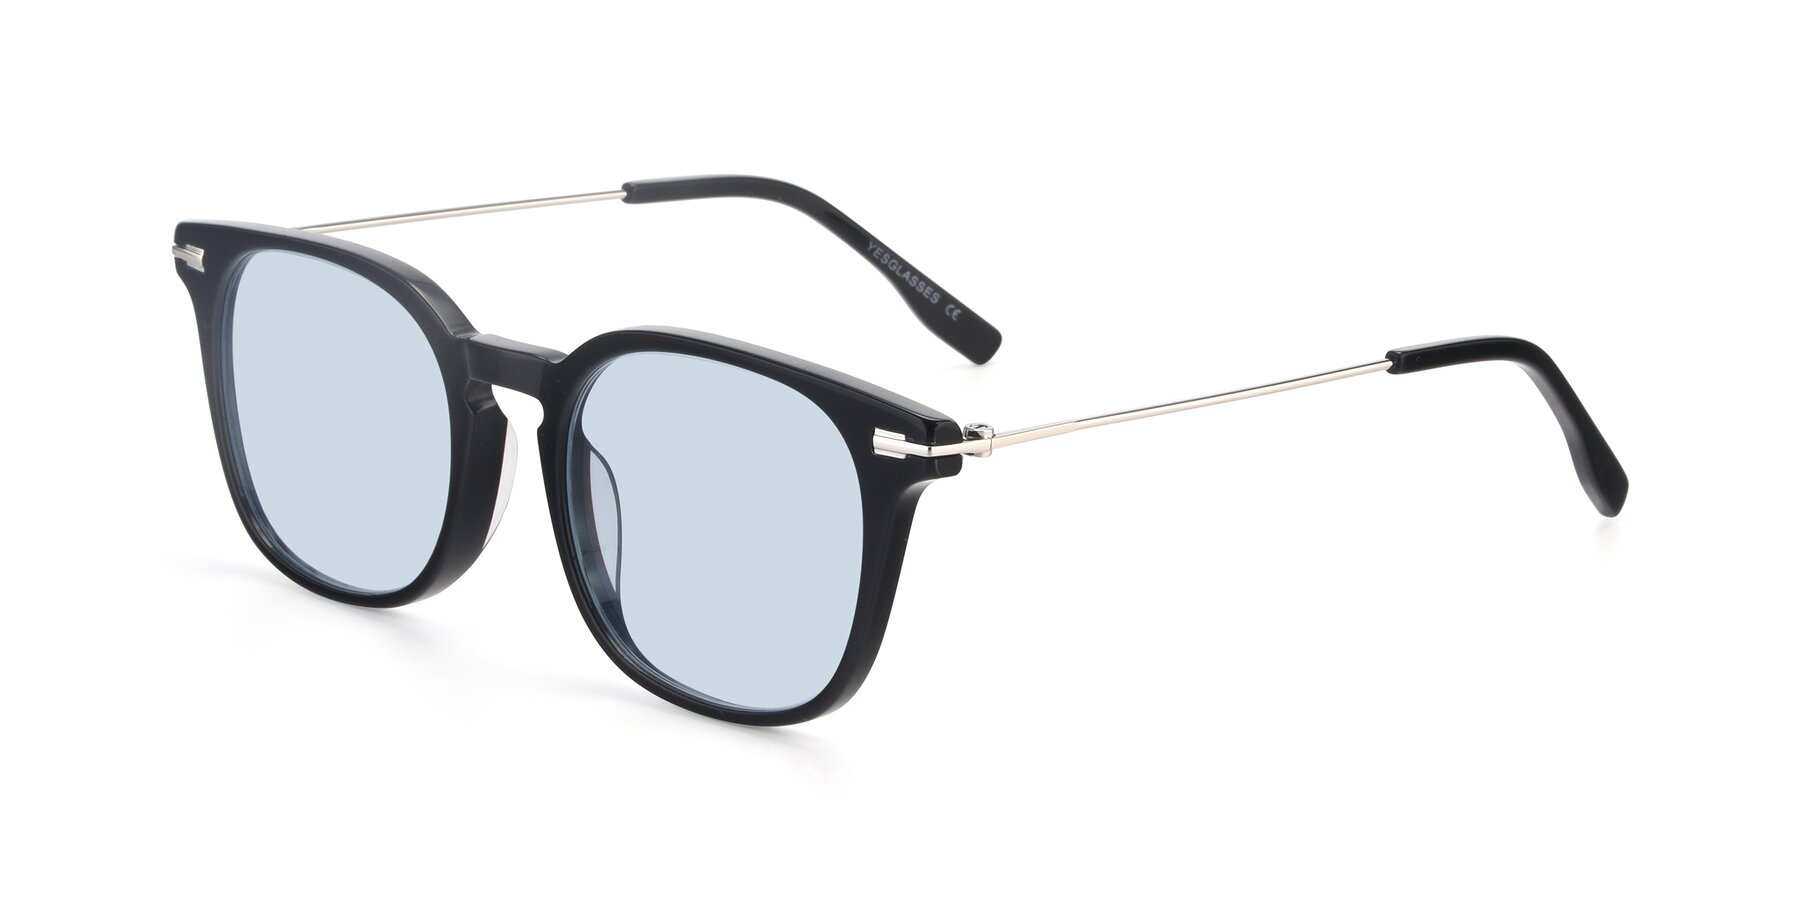 Angle of 17711 in Black with Light Blue Tinted Lenses